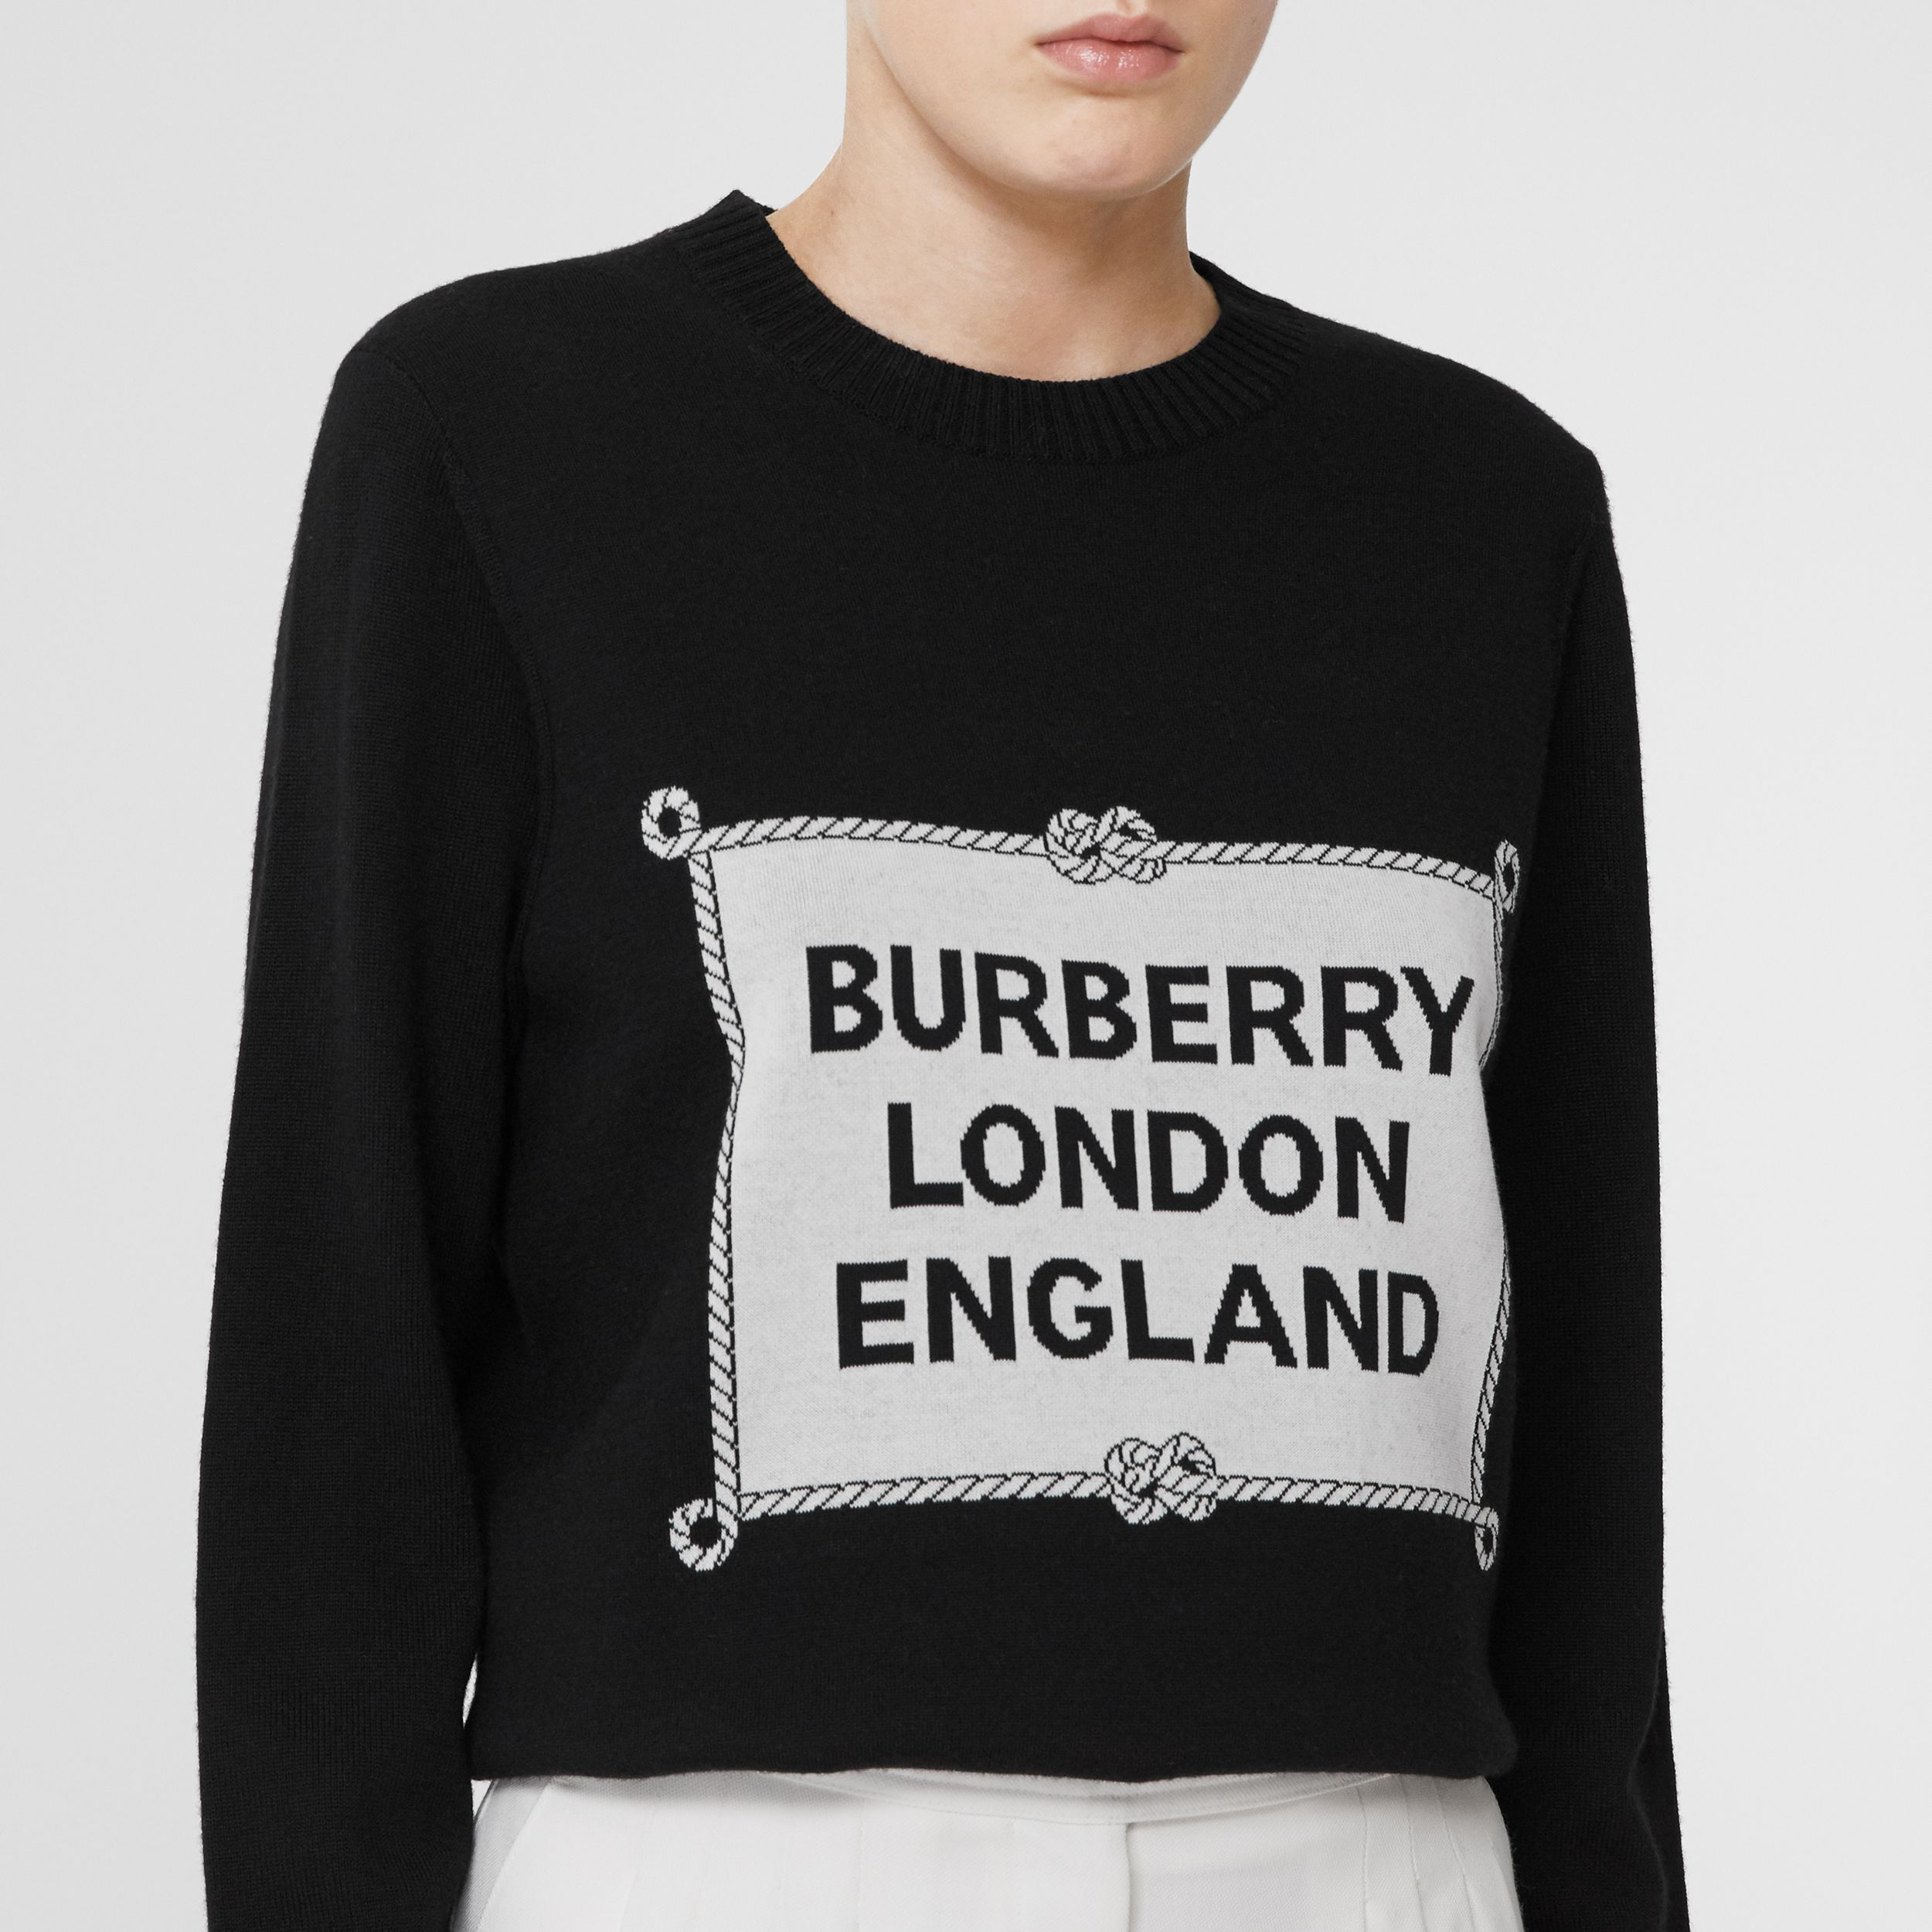 Rigging Intarsia Merino Wool Sweater in Black - Women | Burberry - 2